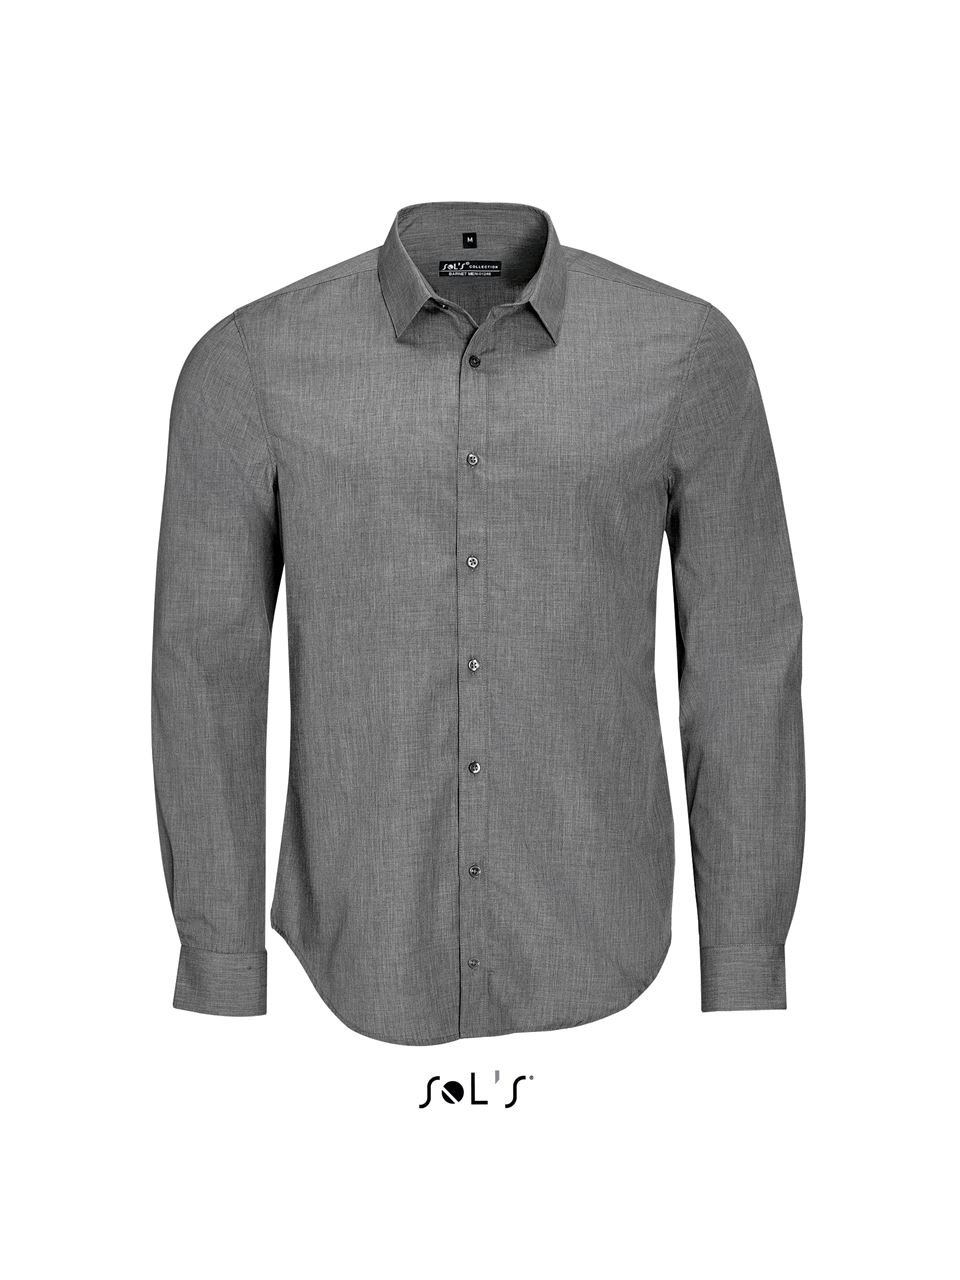 Barnet Men Long Sleeve Heather Poplin Shirtcamasa-barbati-maneca-lunga-barnet-1614.jpg